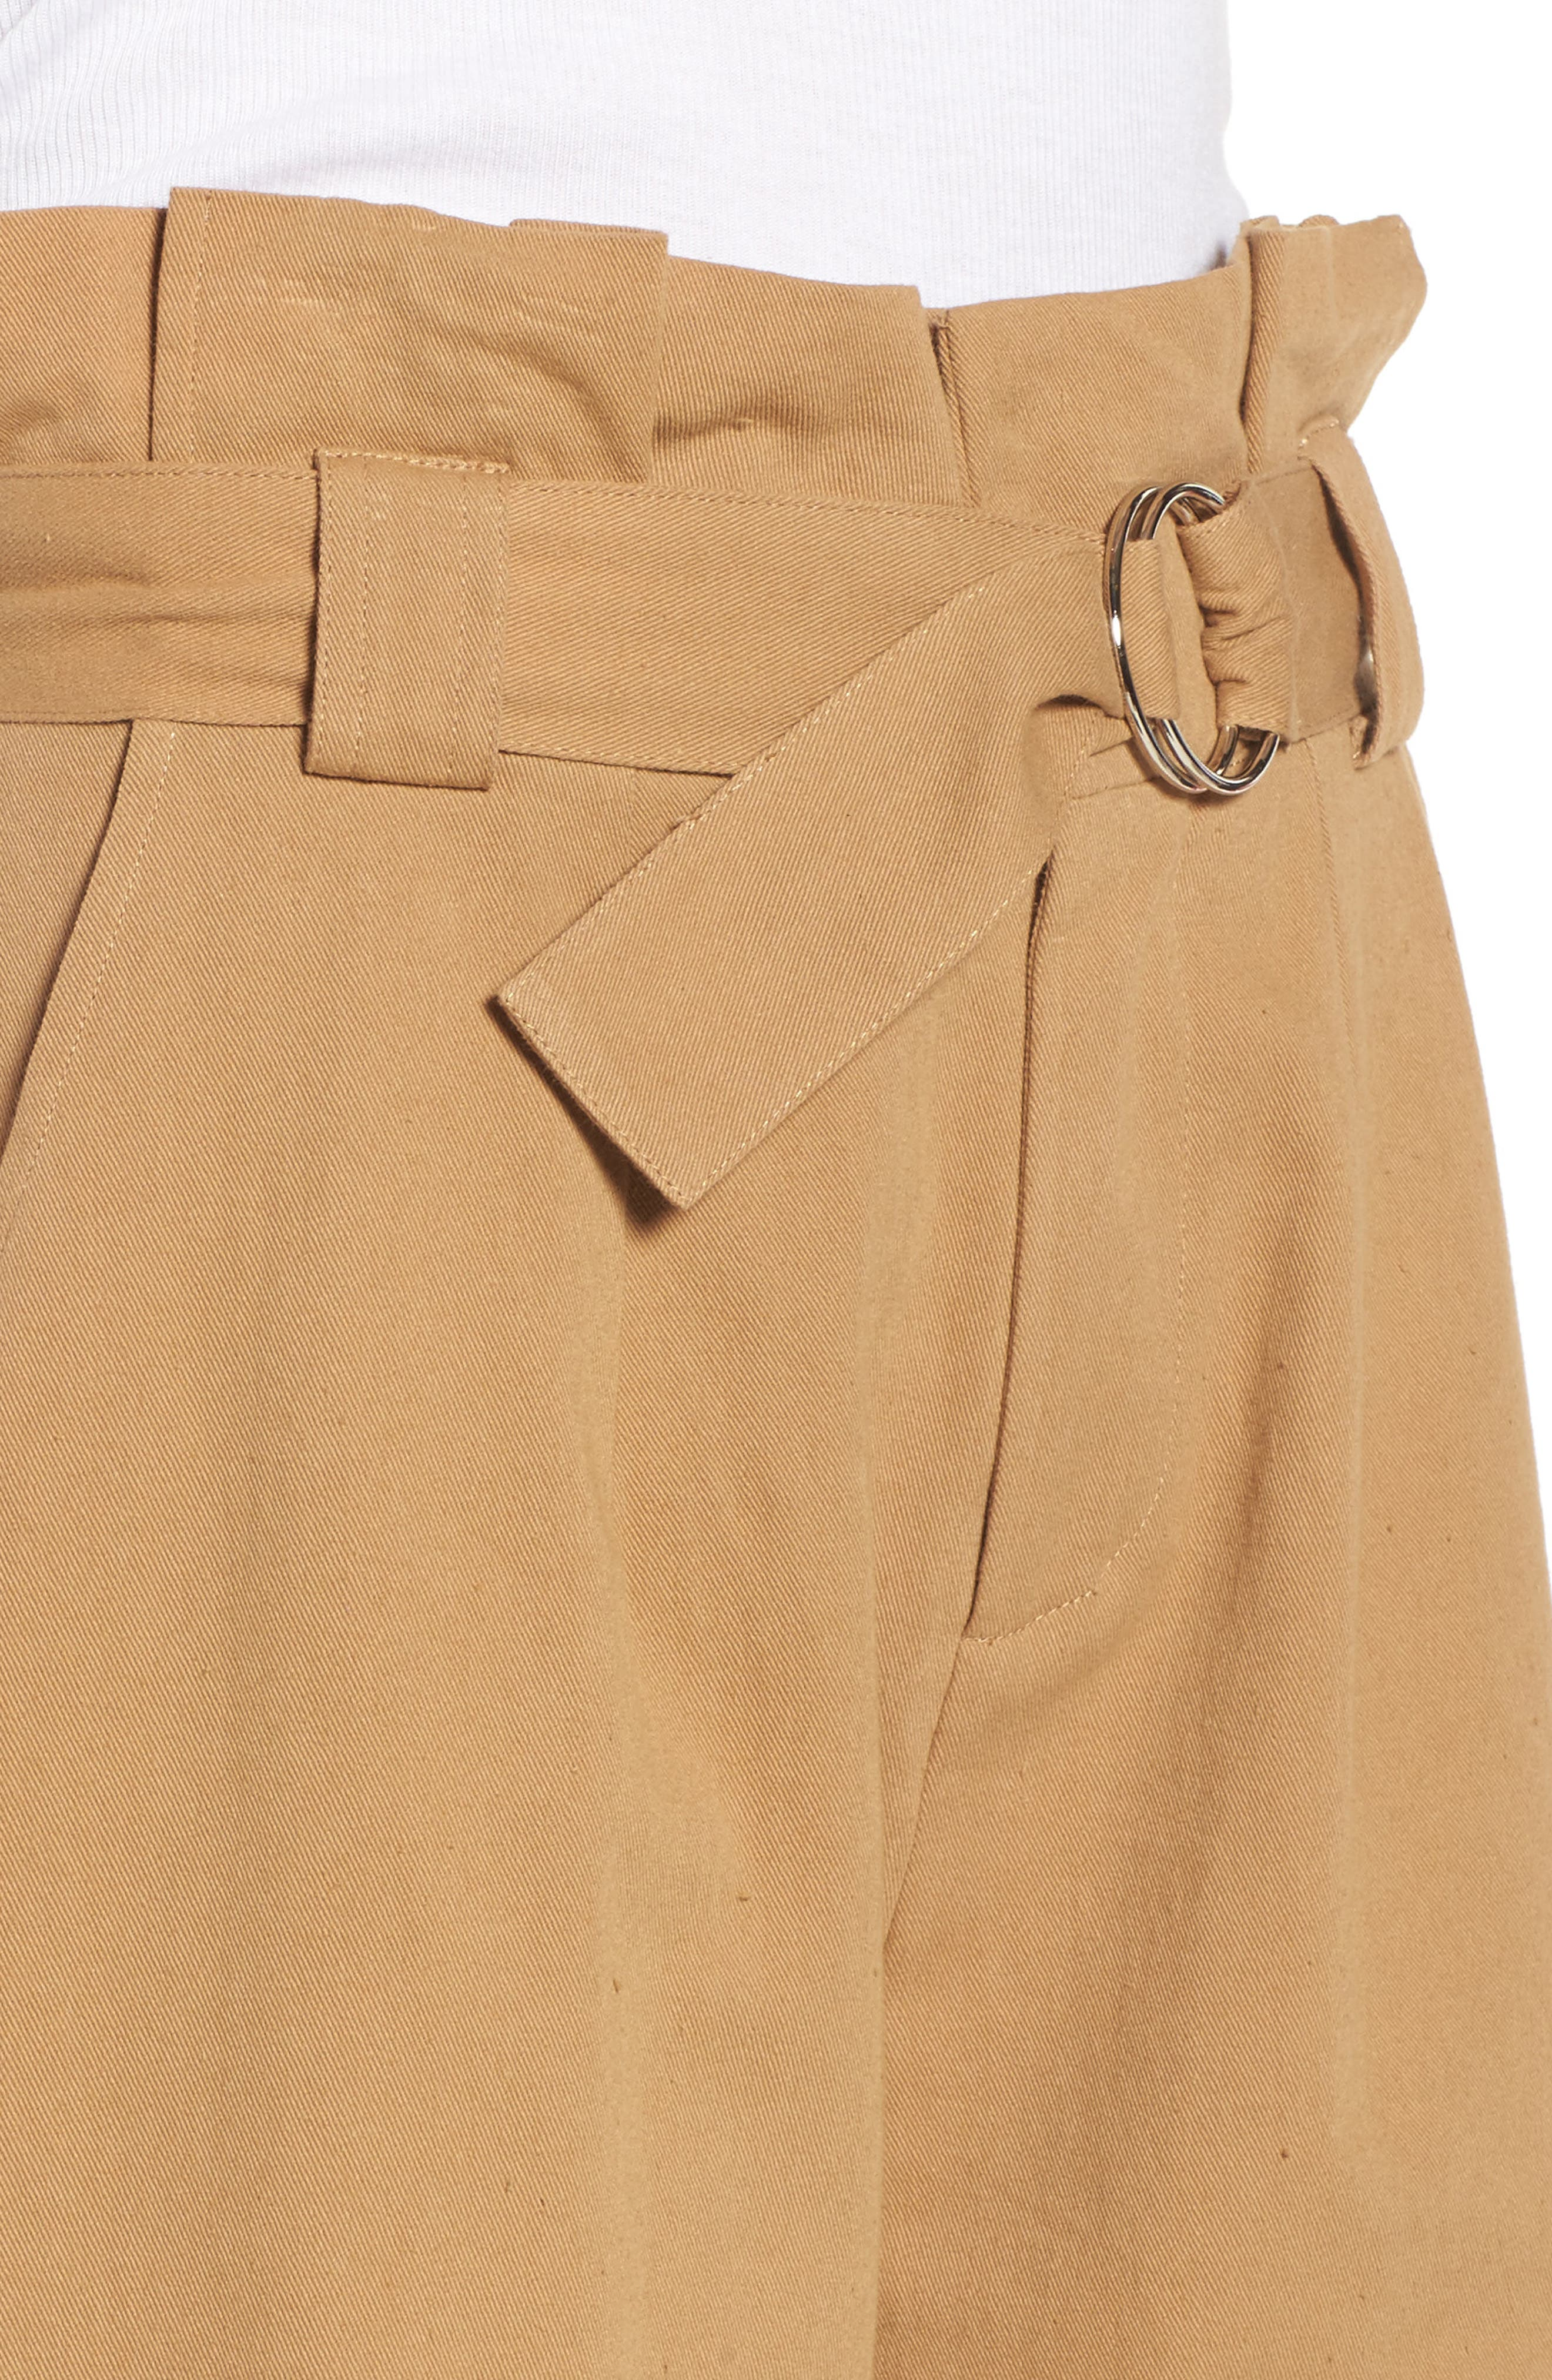 Alternate Image 4  - Paperbag Waist Crop Pants